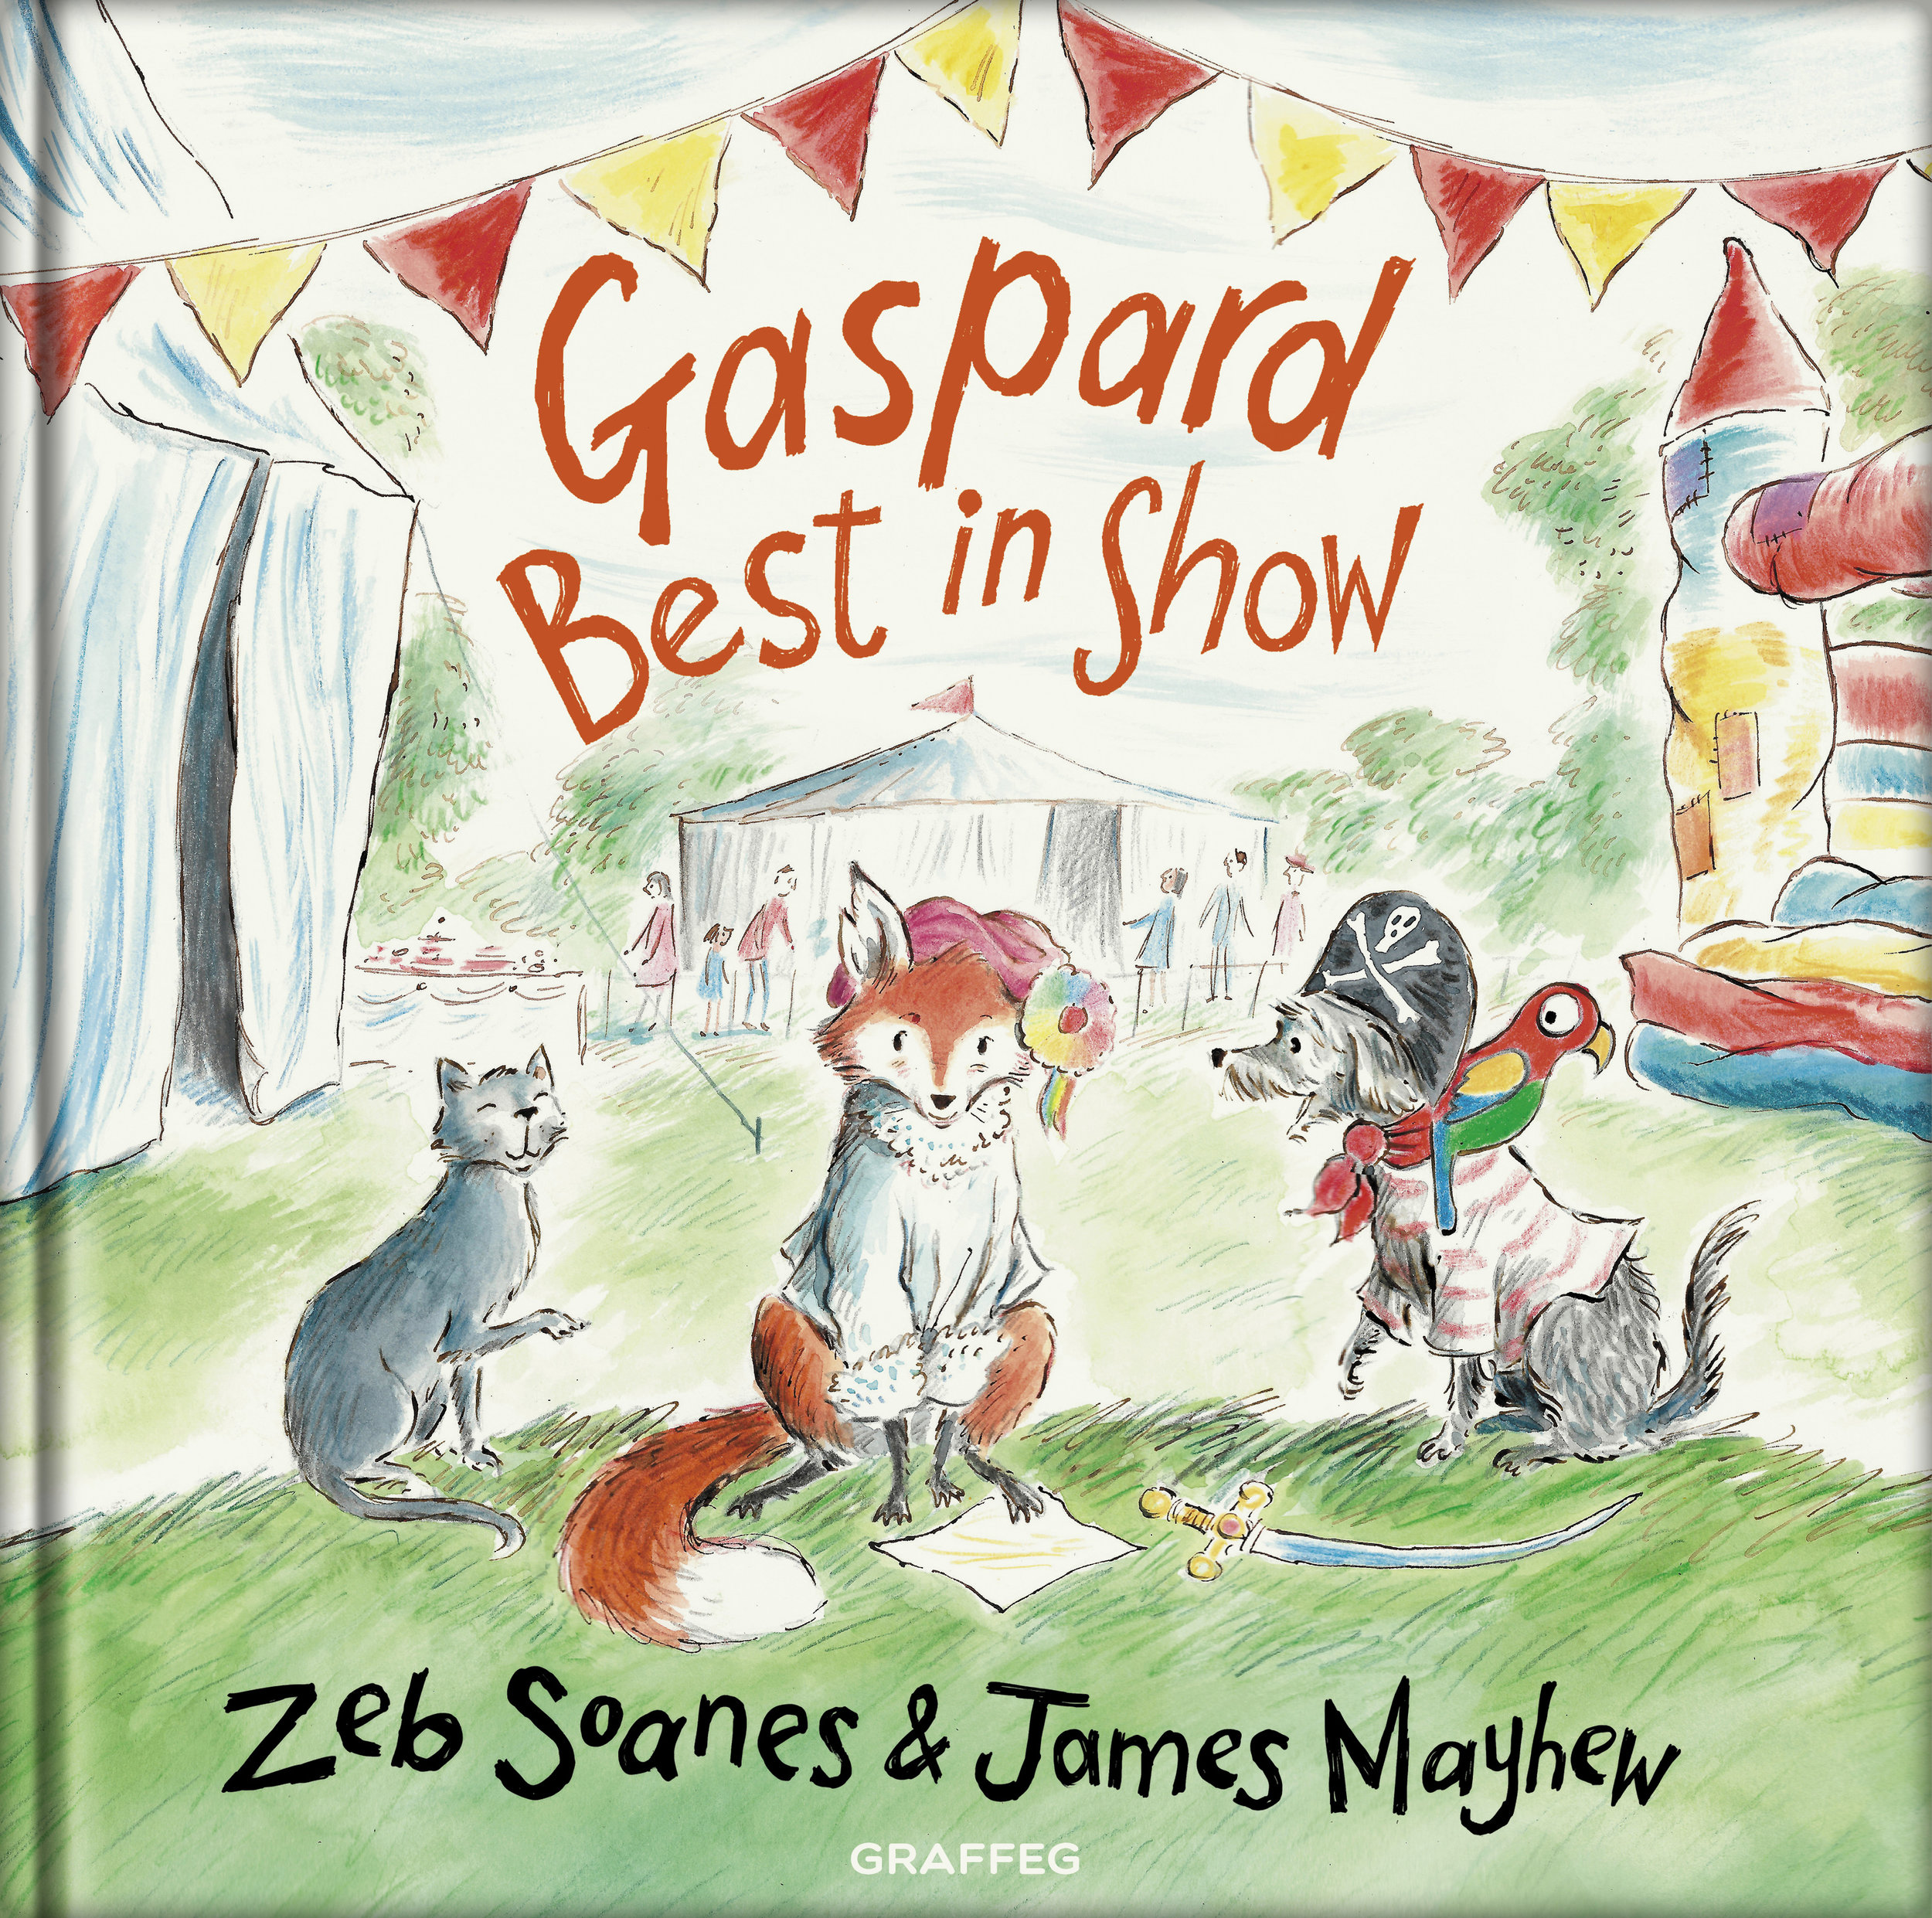 Gaspard BEST IN SHOW_cover-shadow-2.jpg